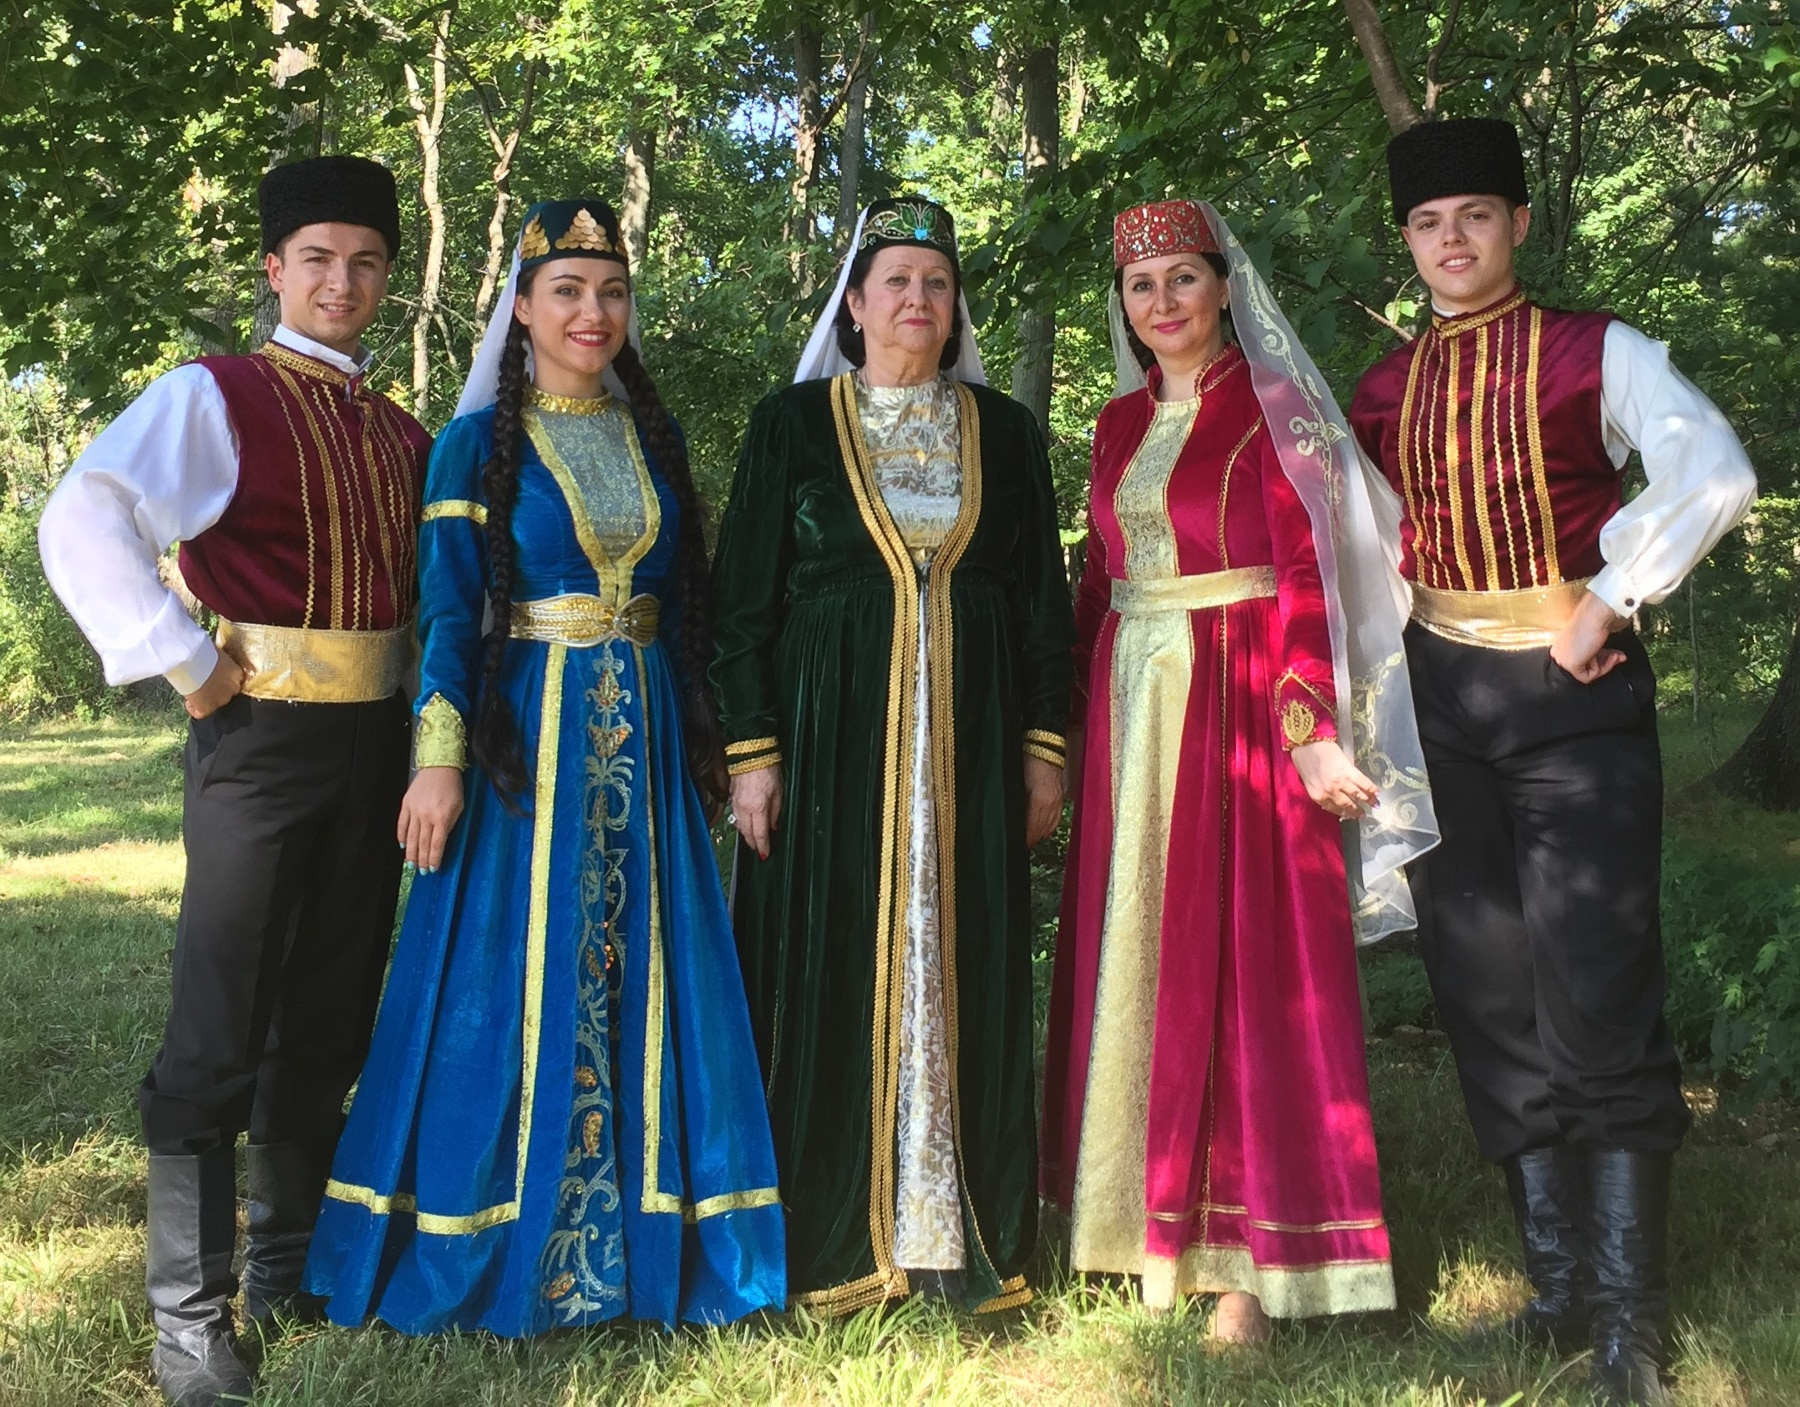 Five people in colorful, embroidered outfits (Efsane Crimean Tatar Ensemble)